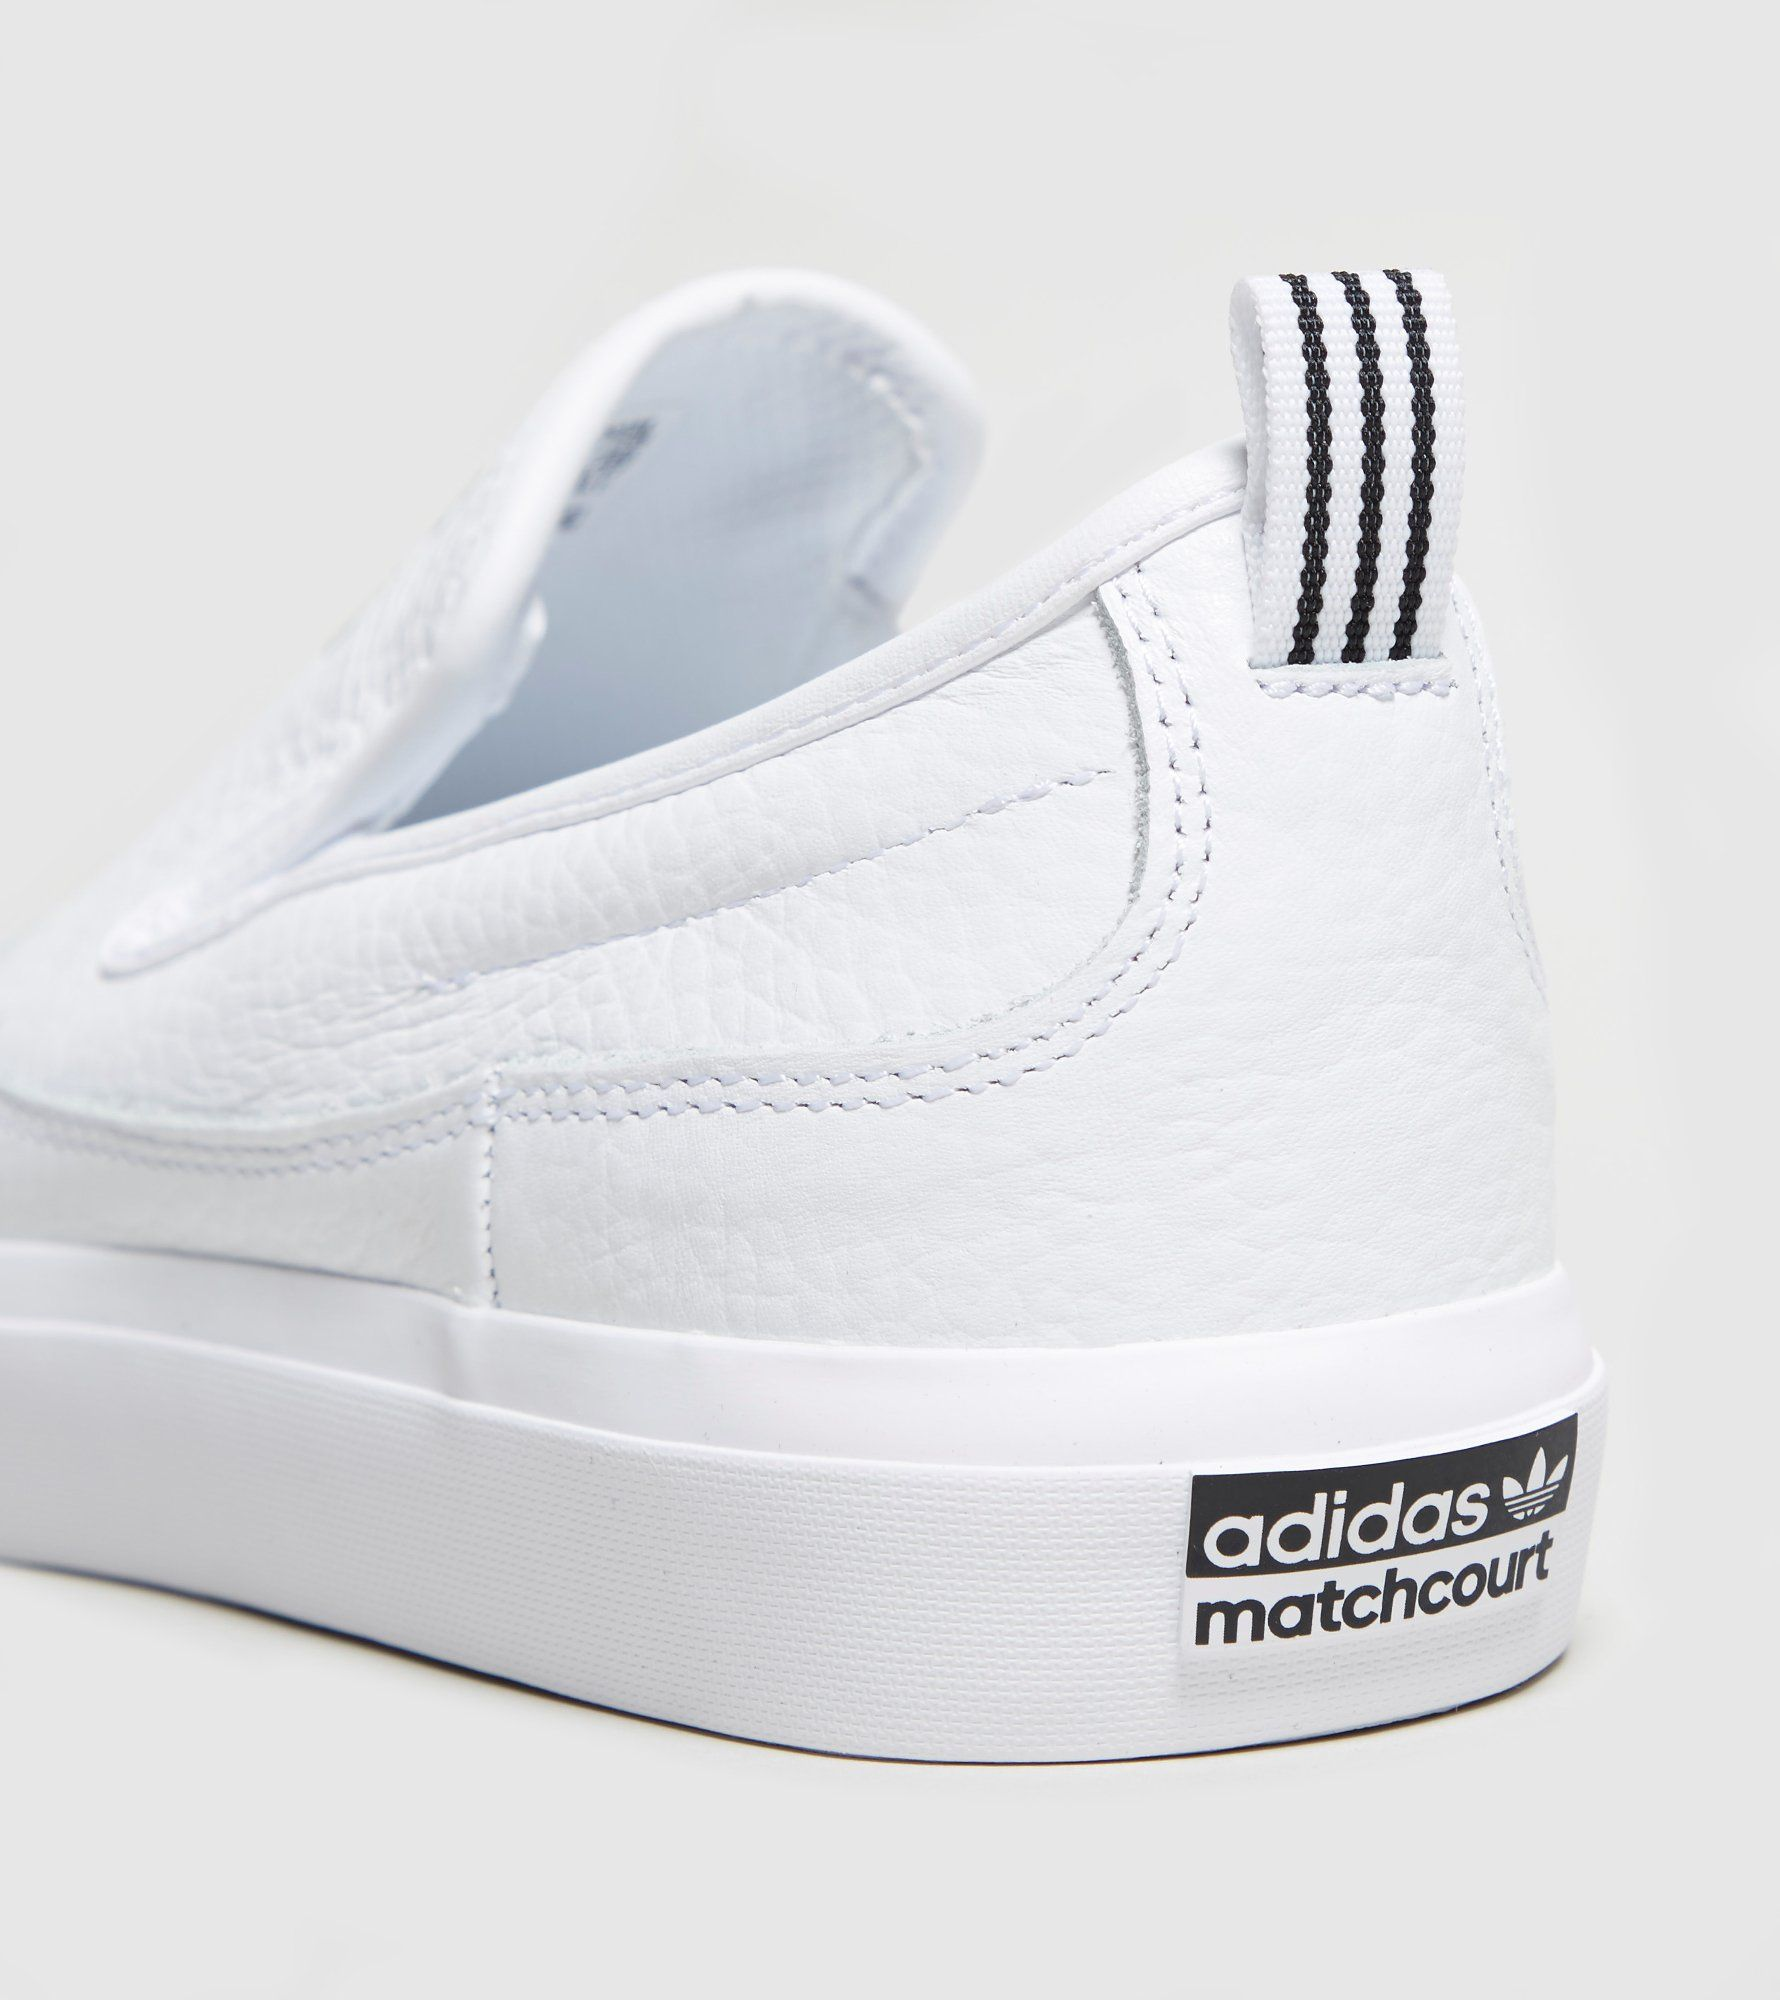 adidas Originals Match Court Slip-On